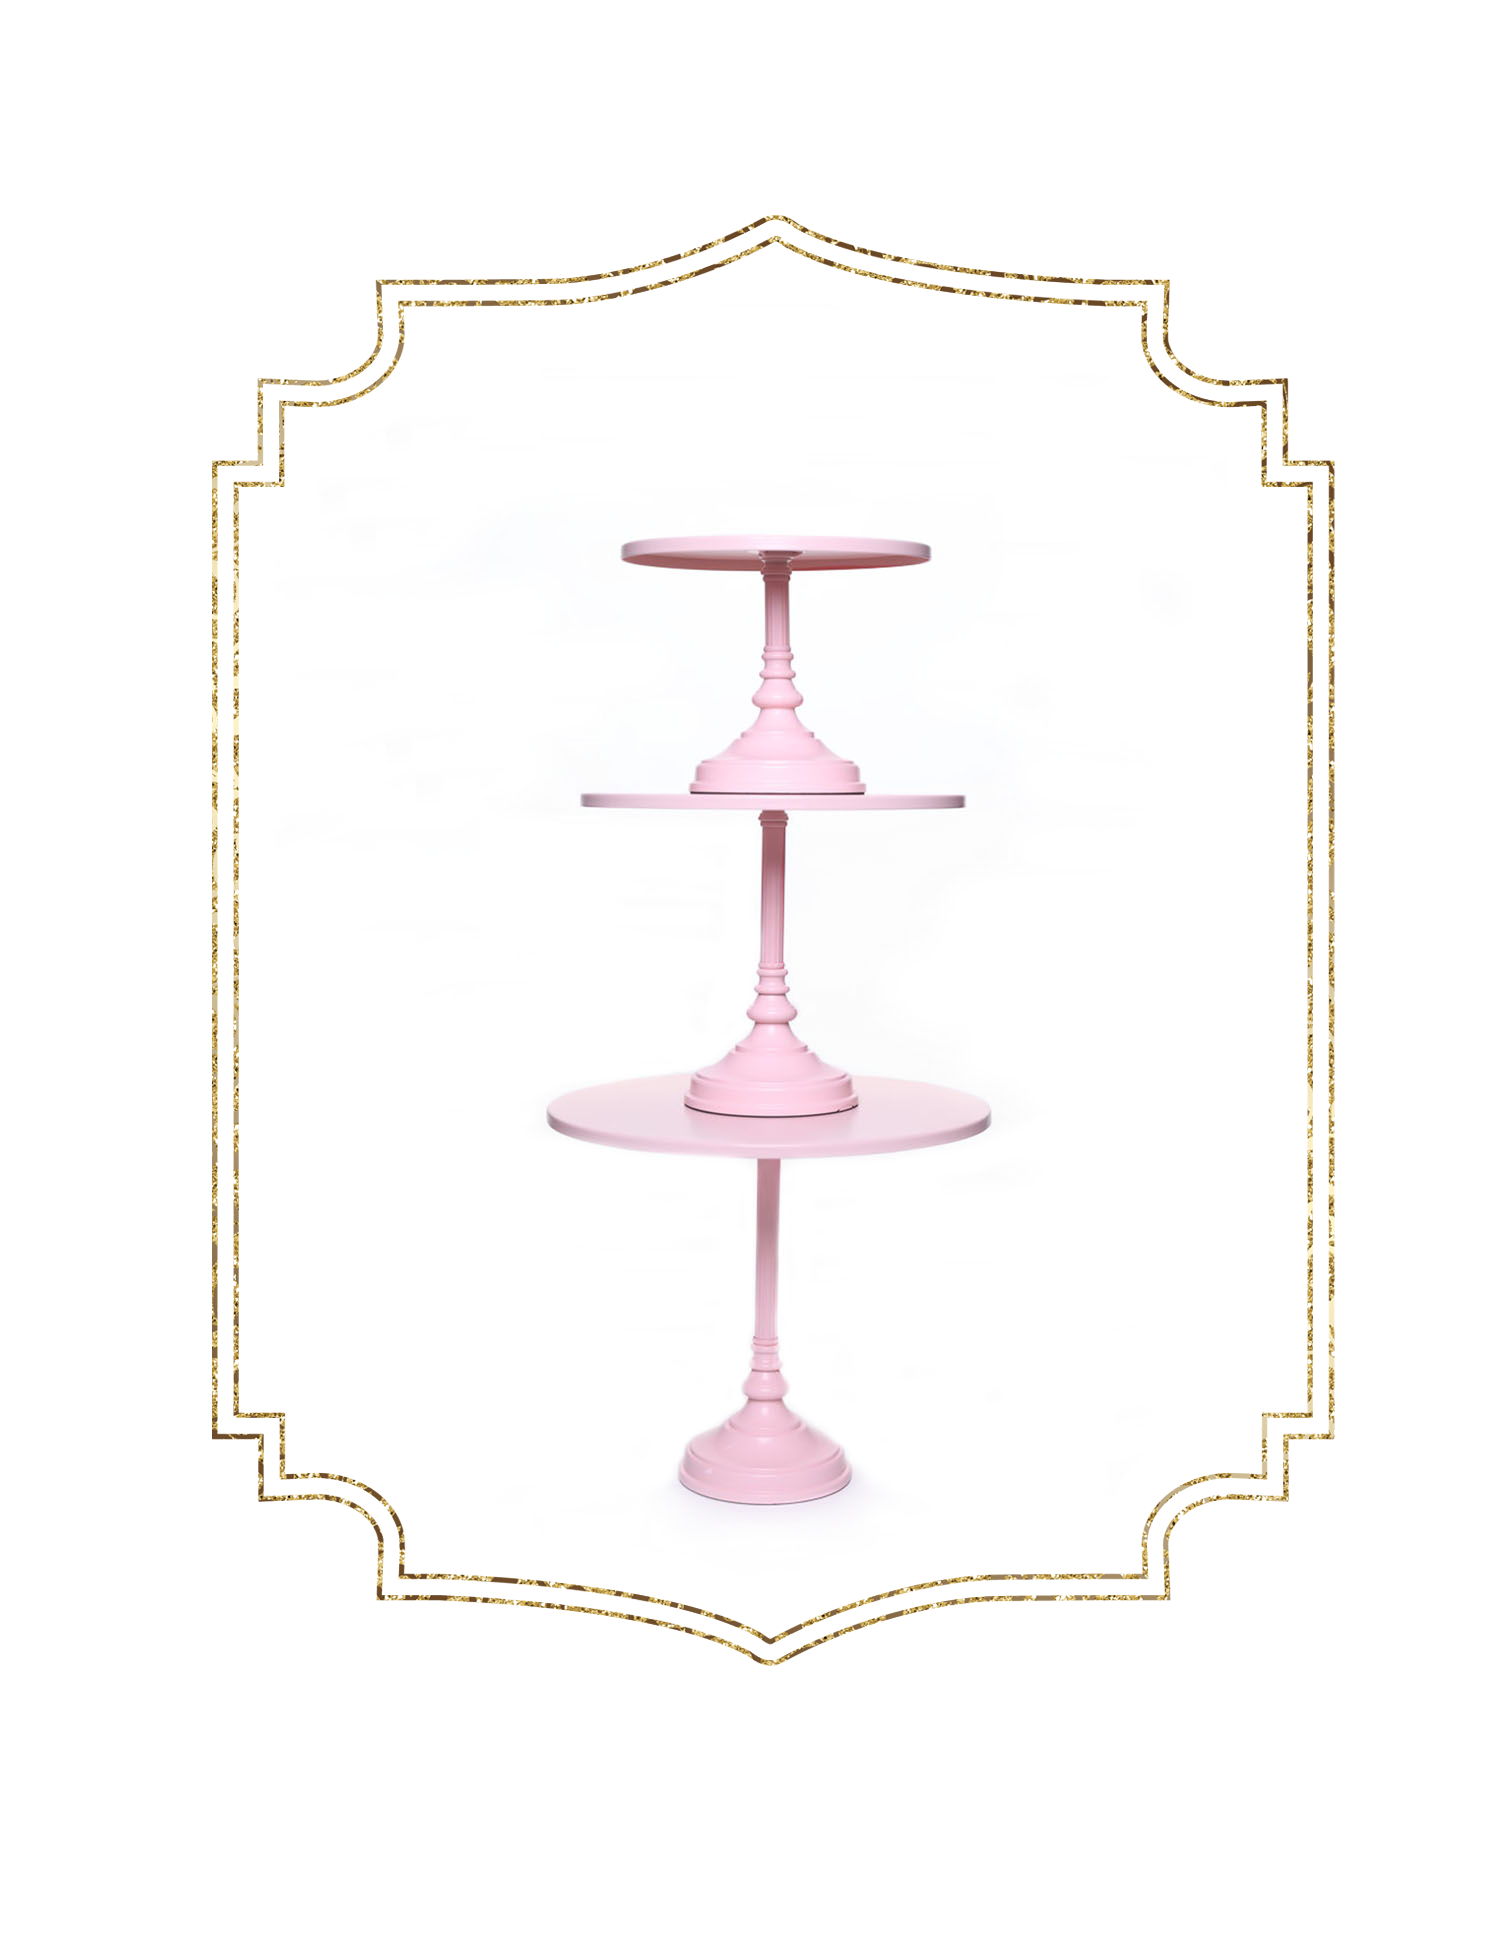 Shop Preview PINK Orb Base Cake Stand.png